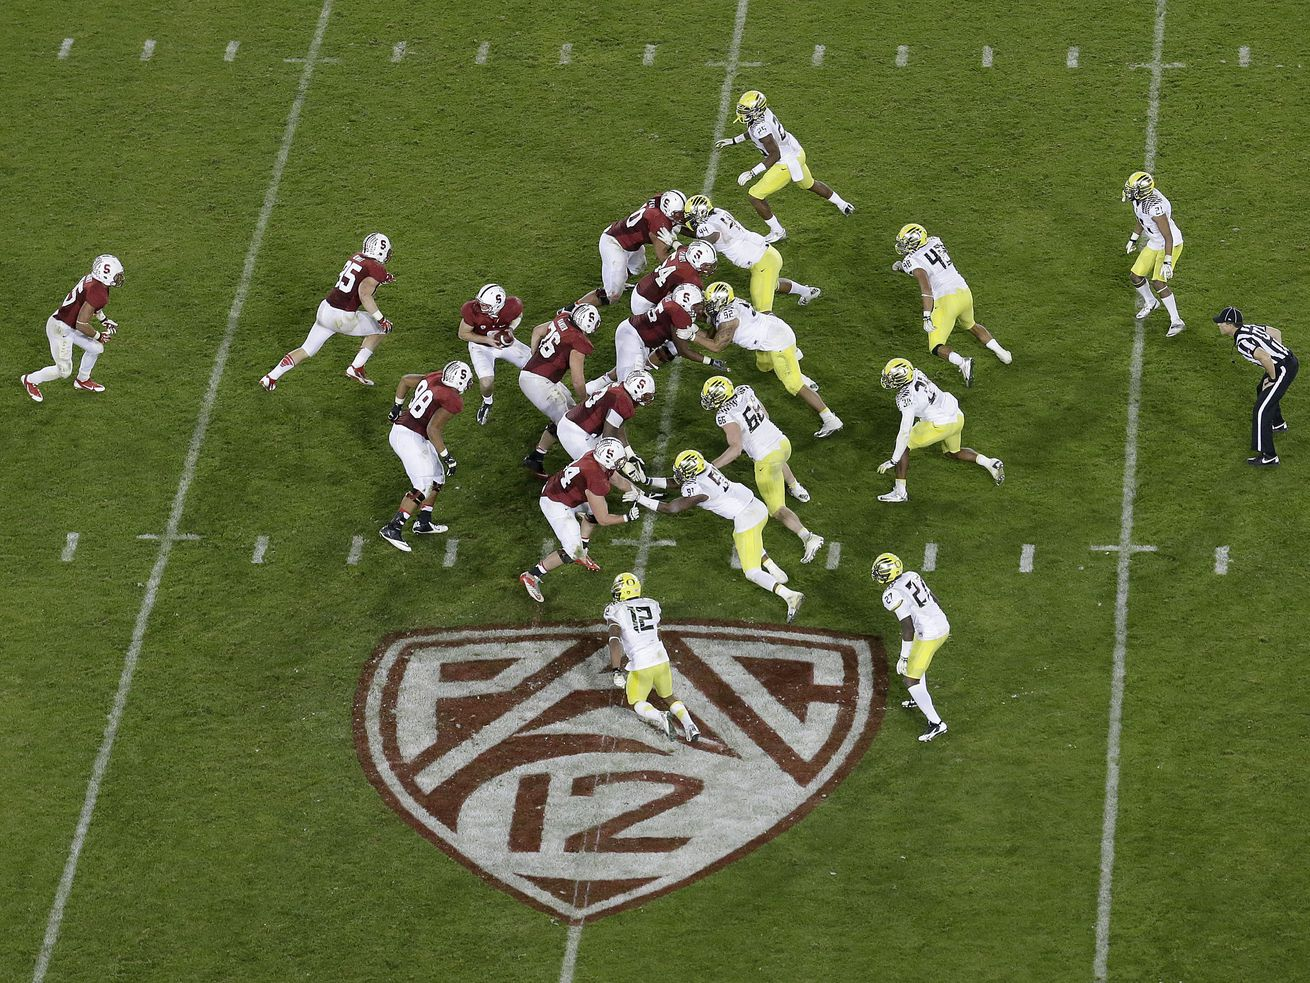 Pac-12 player demands reasonable and overdue, but is there enough unity to see movement through?